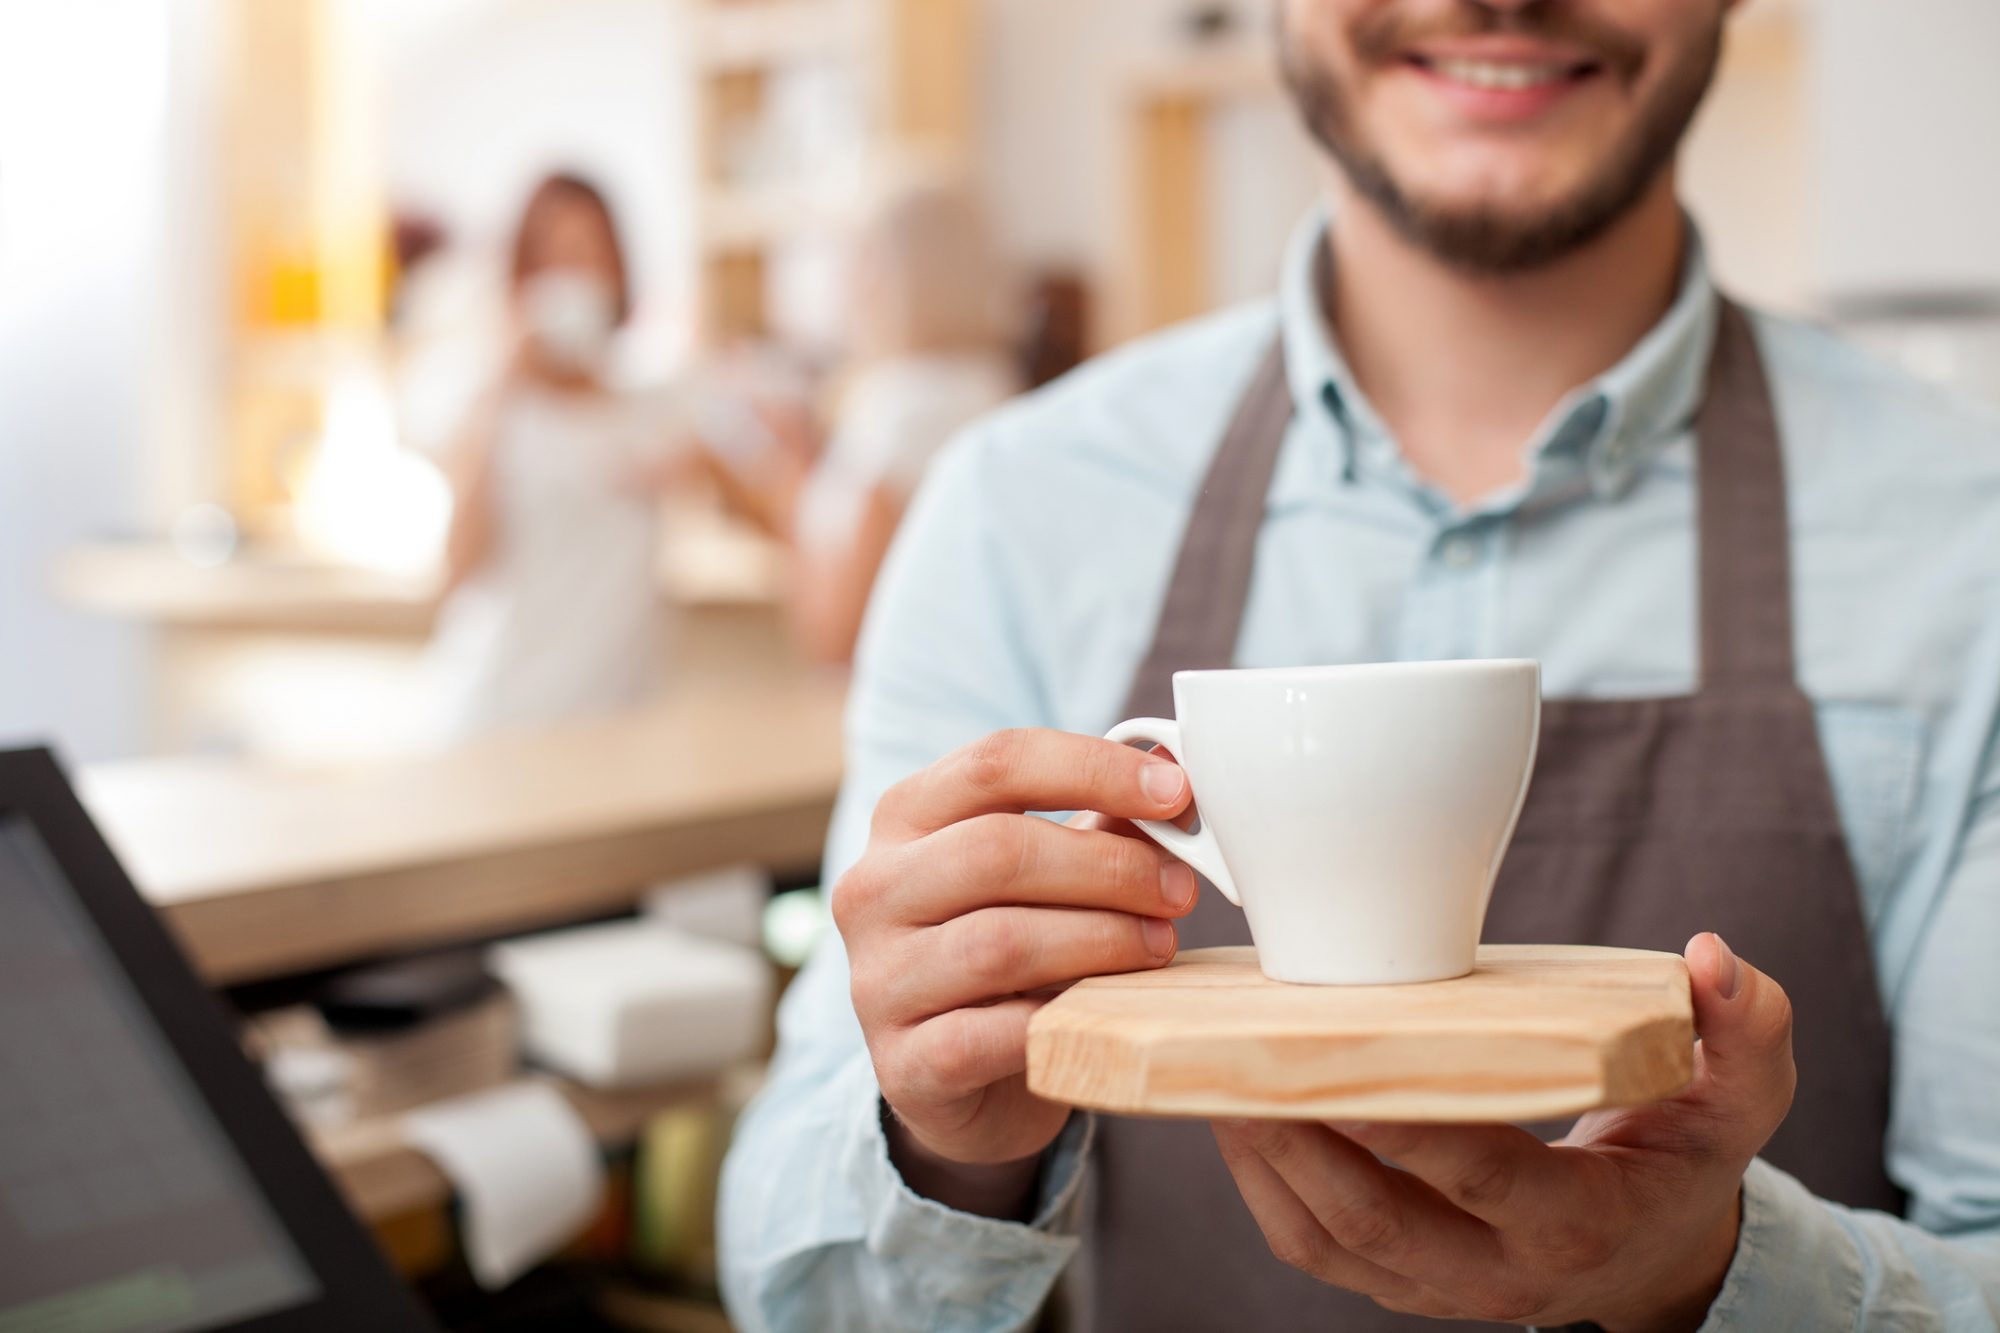 Close up of worker of cafeteria. The man is holding a cup of coffee and giving it with joy. The man is standing and smiling. Two women are drinking espresso and talking on background